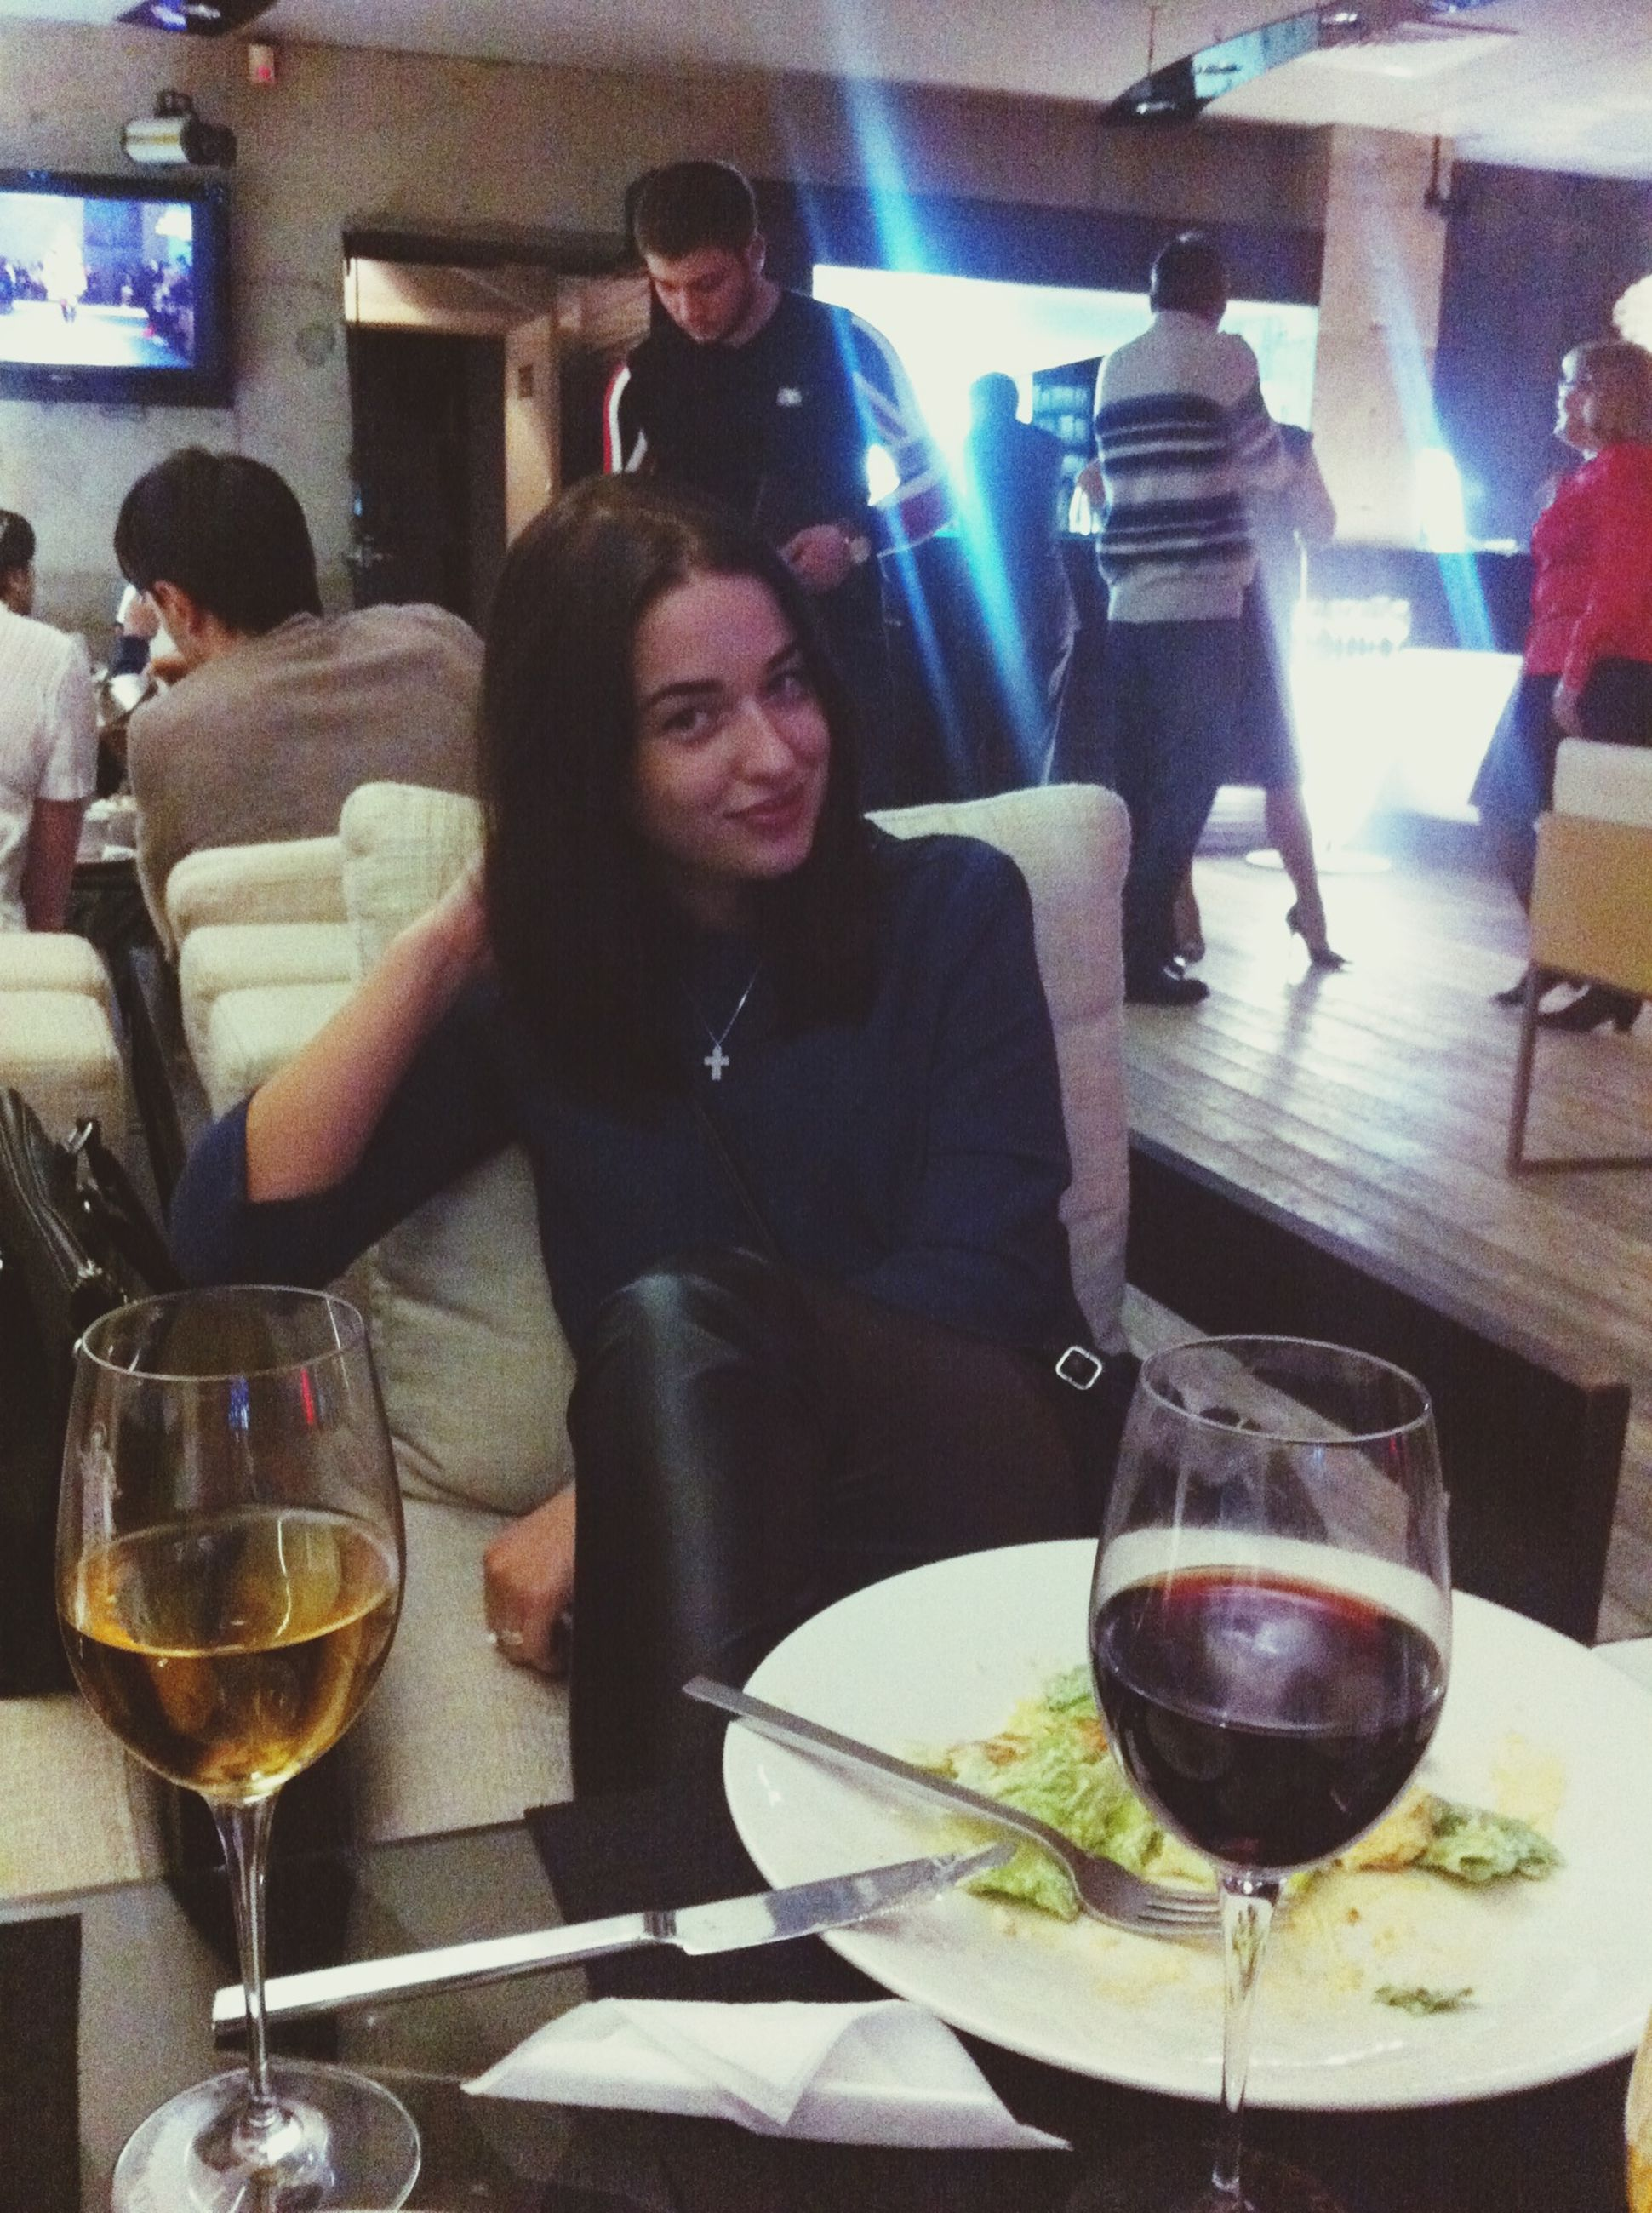 indoors, lifestyles, food and drink, drink, leisure activity, person, restaurant, table, casual clothing, young adult, sitting, drinking glass, alcohol, refreshment, front view, standing, glass - material, wineglass